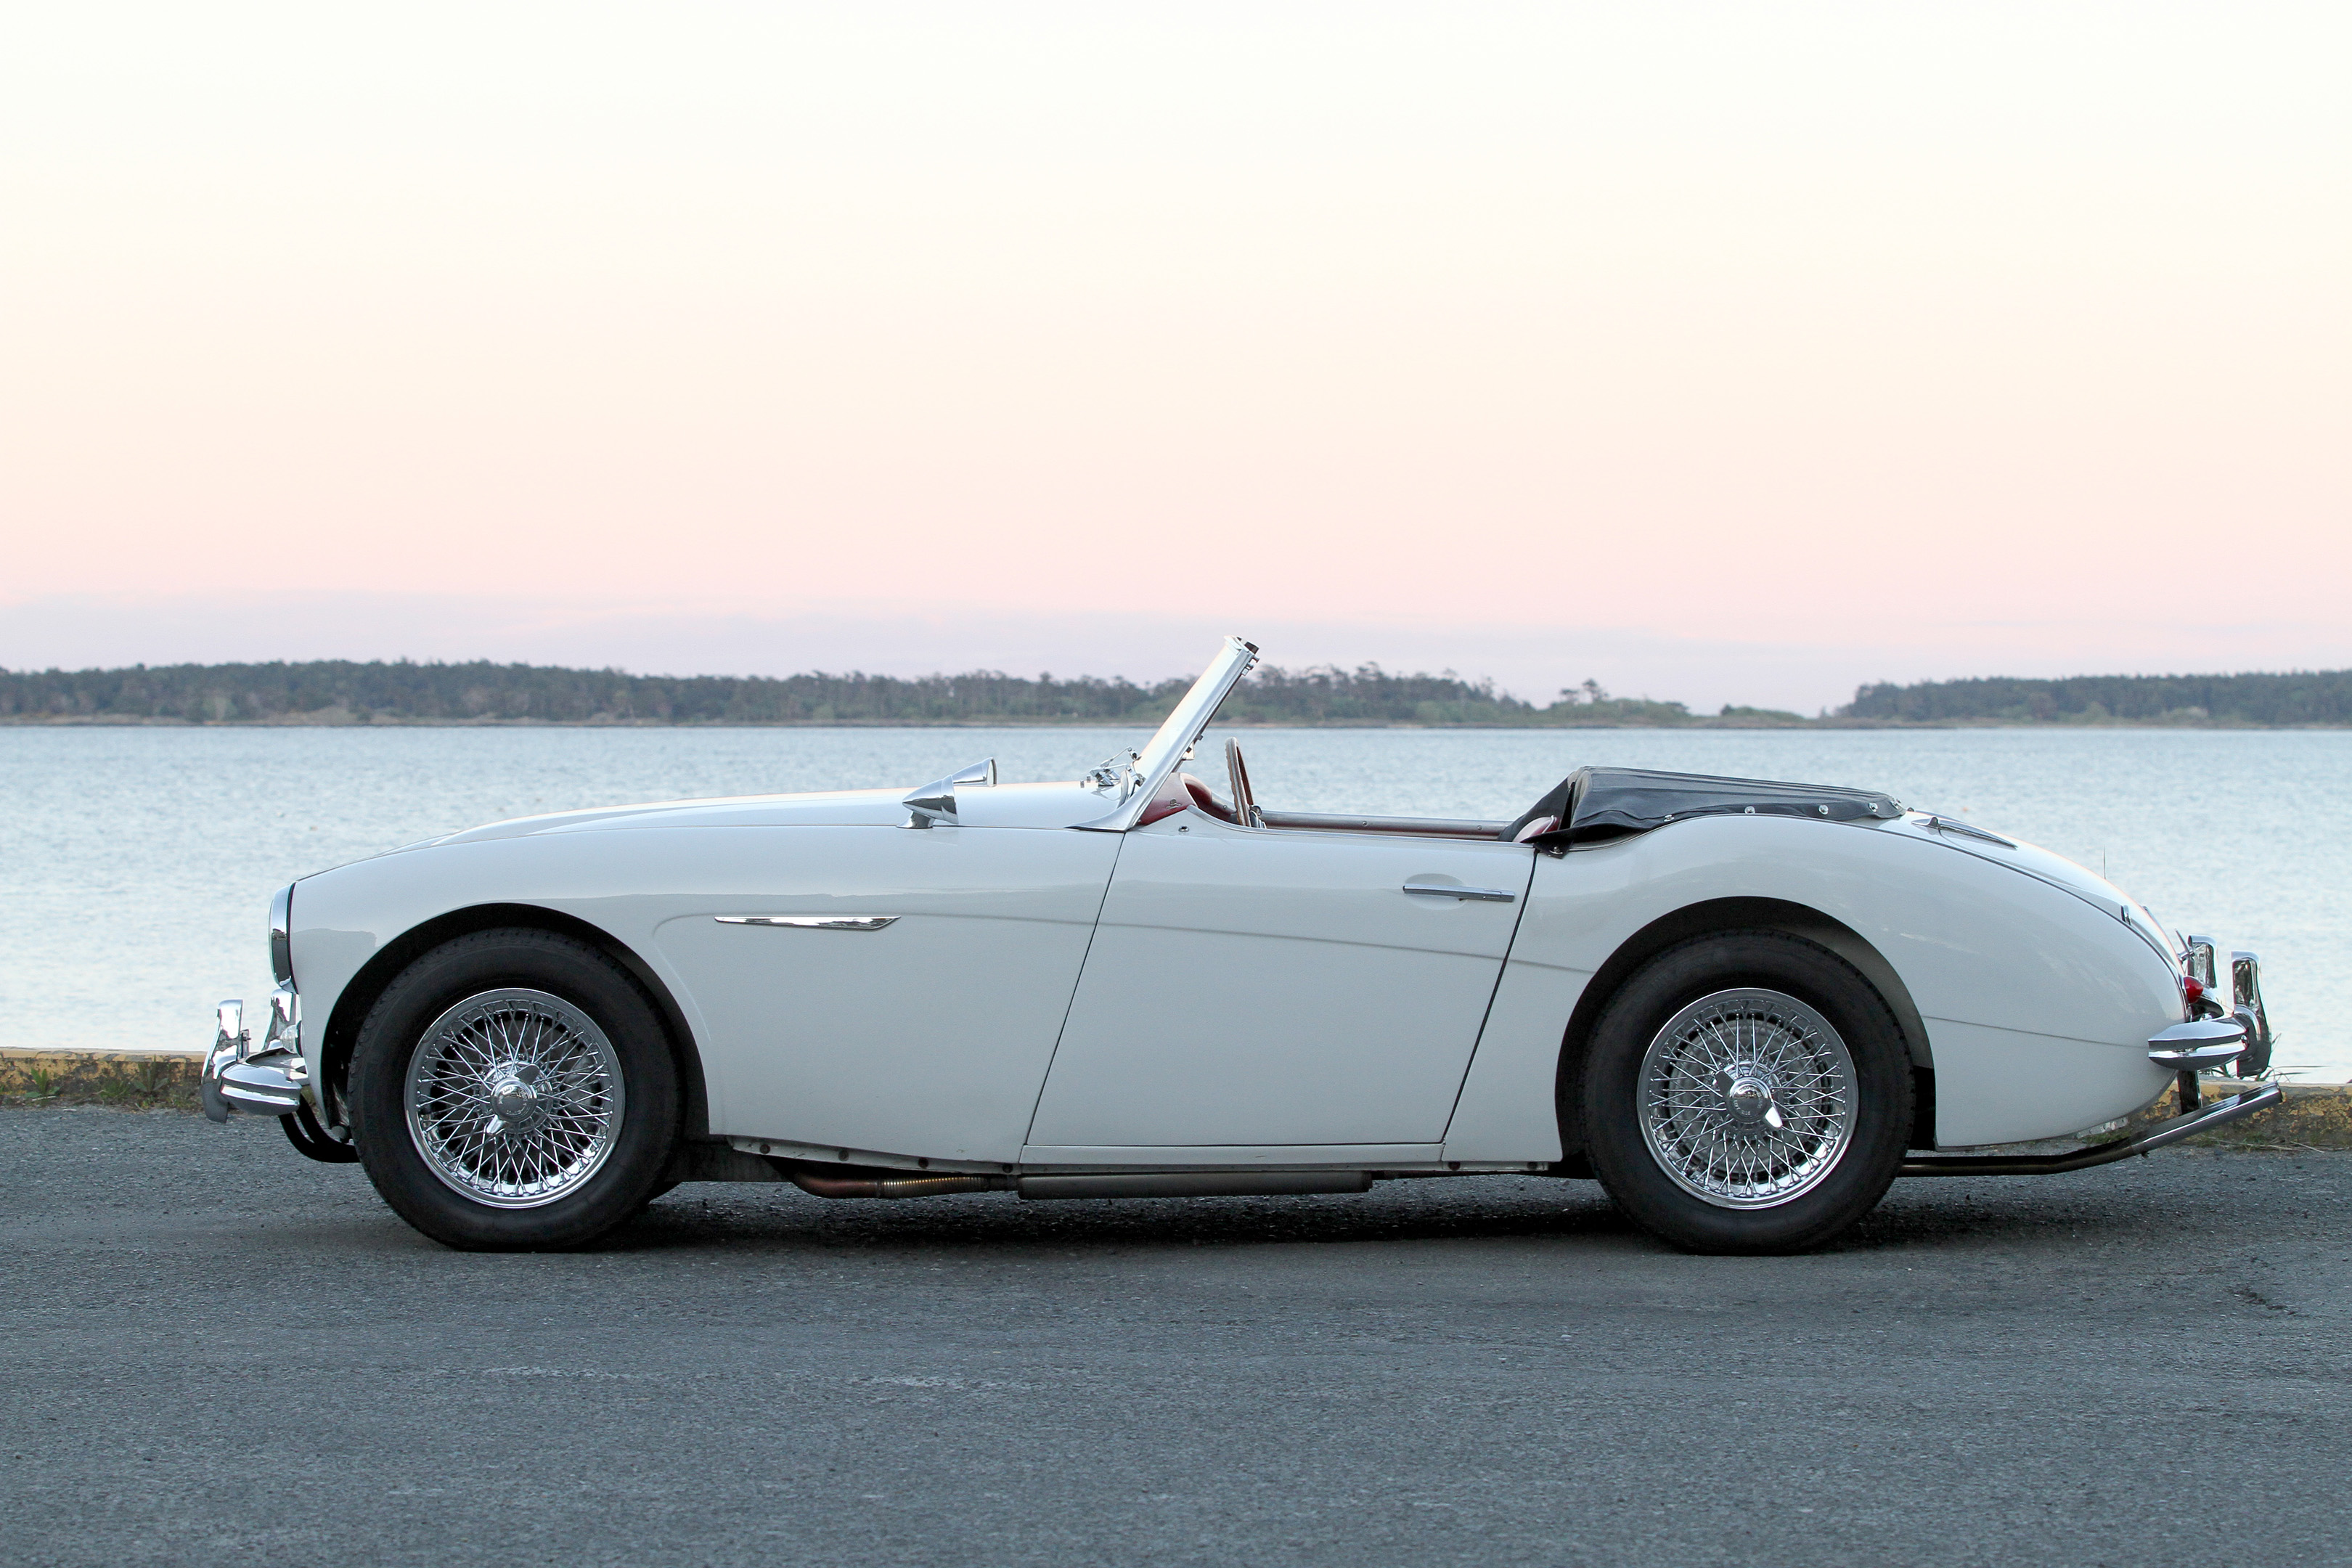 Bt7 Owen Automotive Canada Jaguar Xk150 Wiring Harness Rebuilt Overdrive By Autofarm Fuel Pump Exhaust System Wire Wheels Tires Hoses And Tonneau Comes With Side Curtains New Softtop